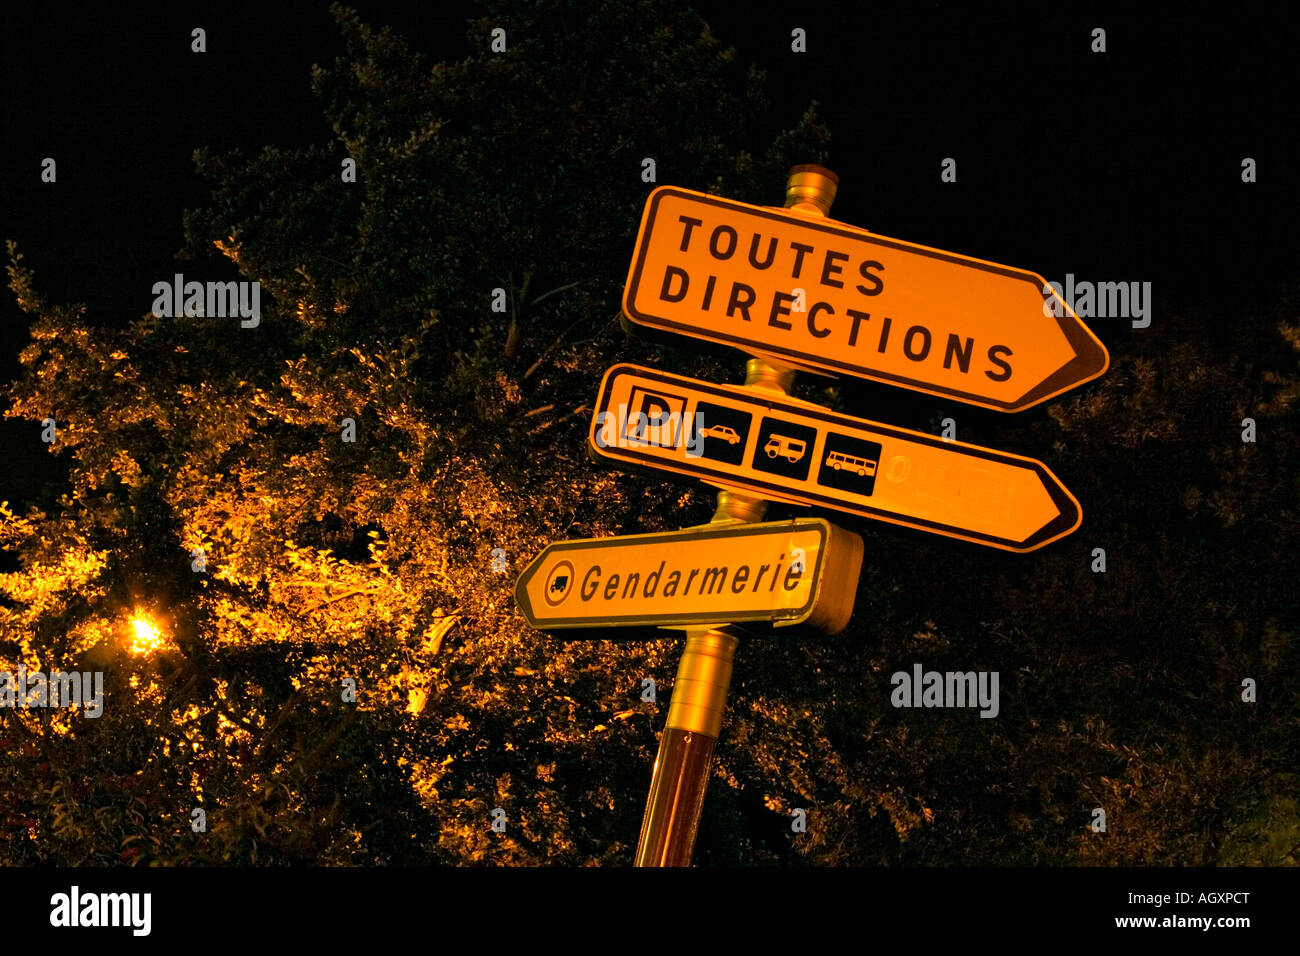 A French street sign showing 'Toutes Directions' - Stock Image